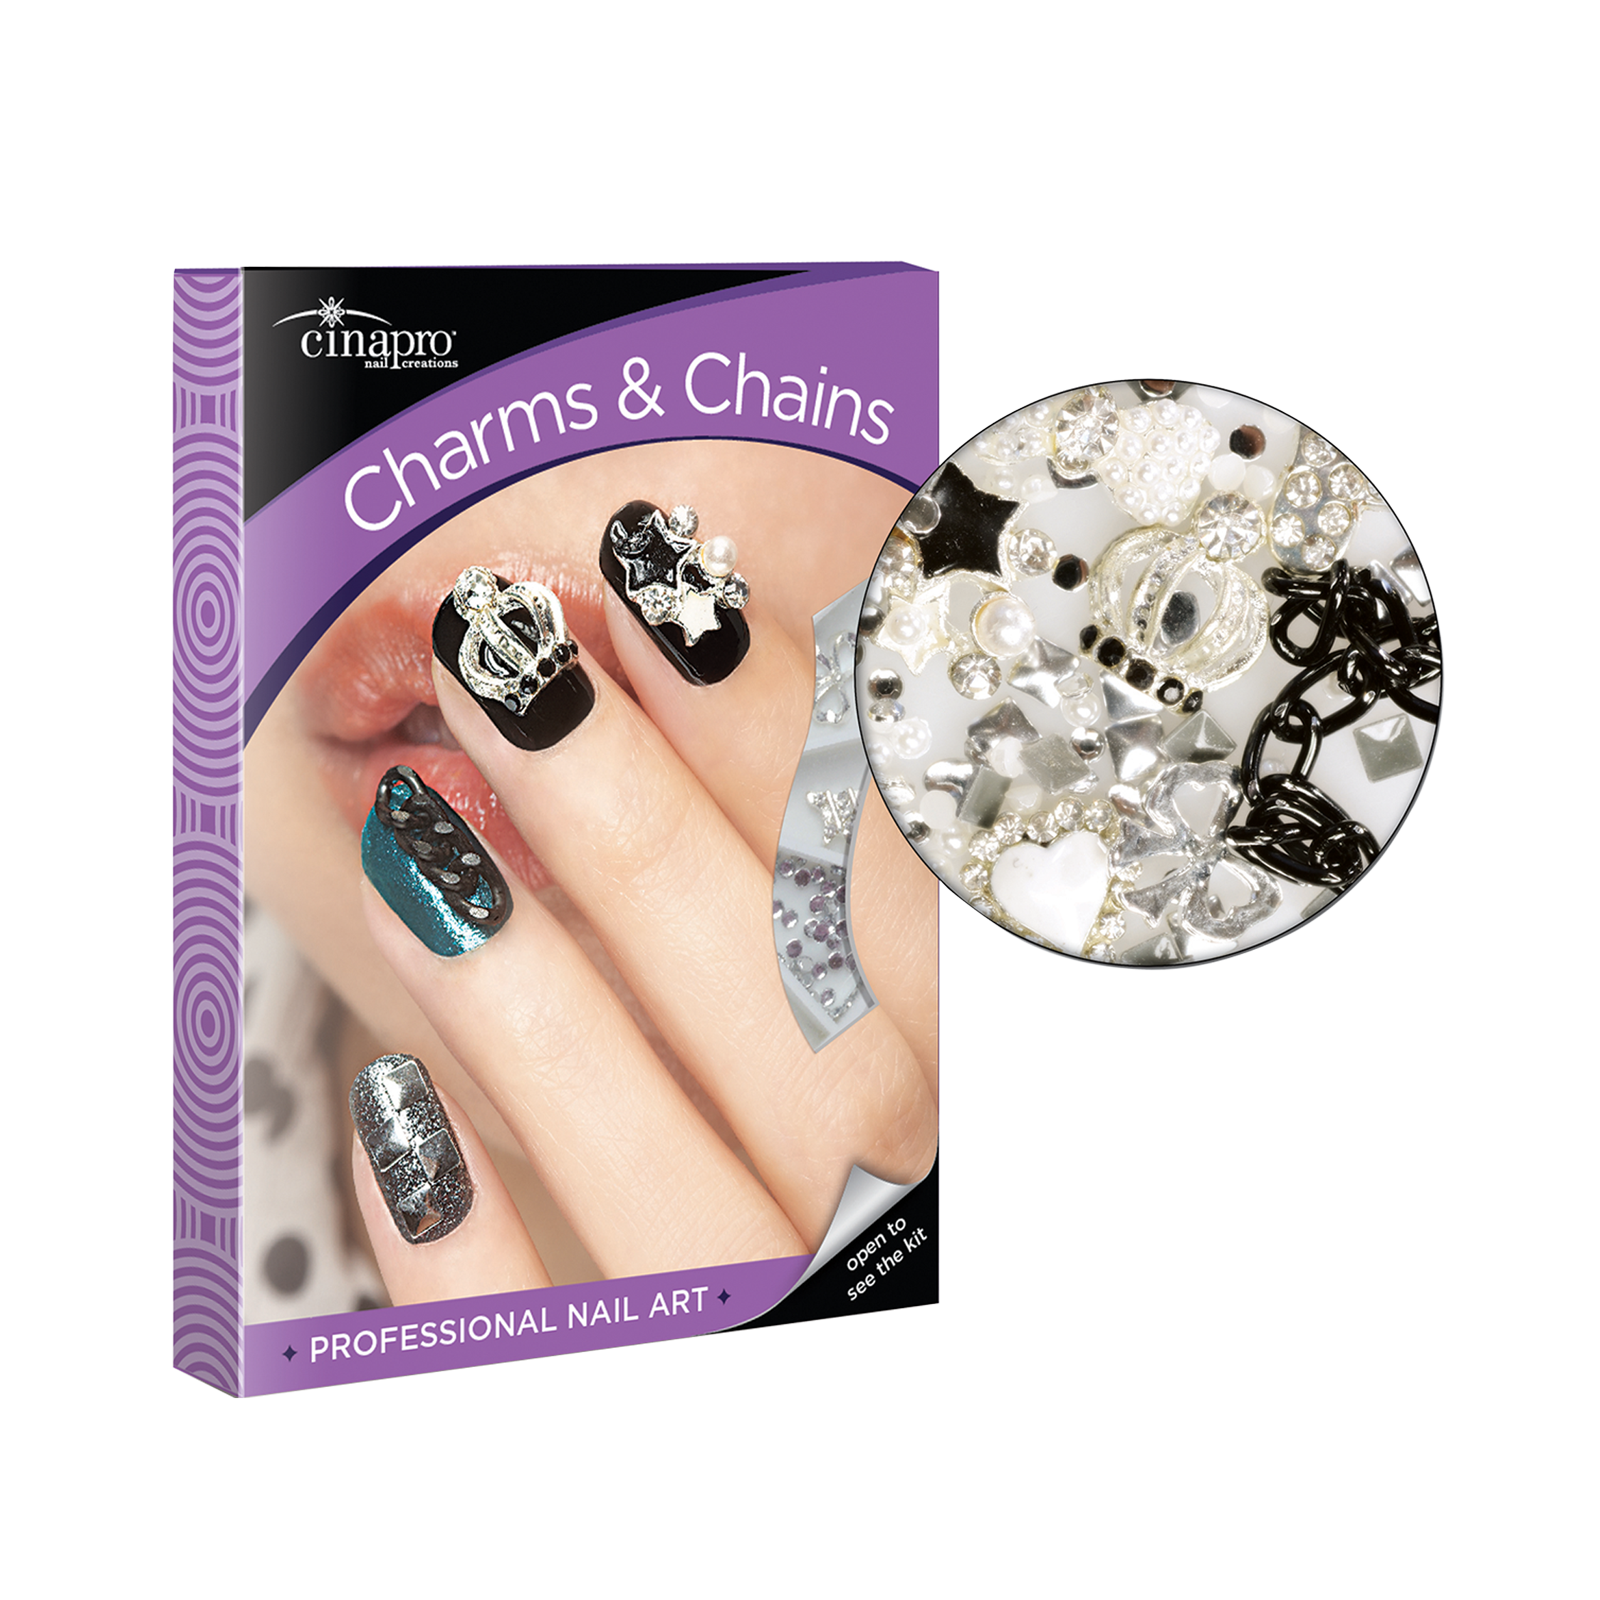 Cinapro Professional Nail Art Kit Charms Chains Cuccio Cina